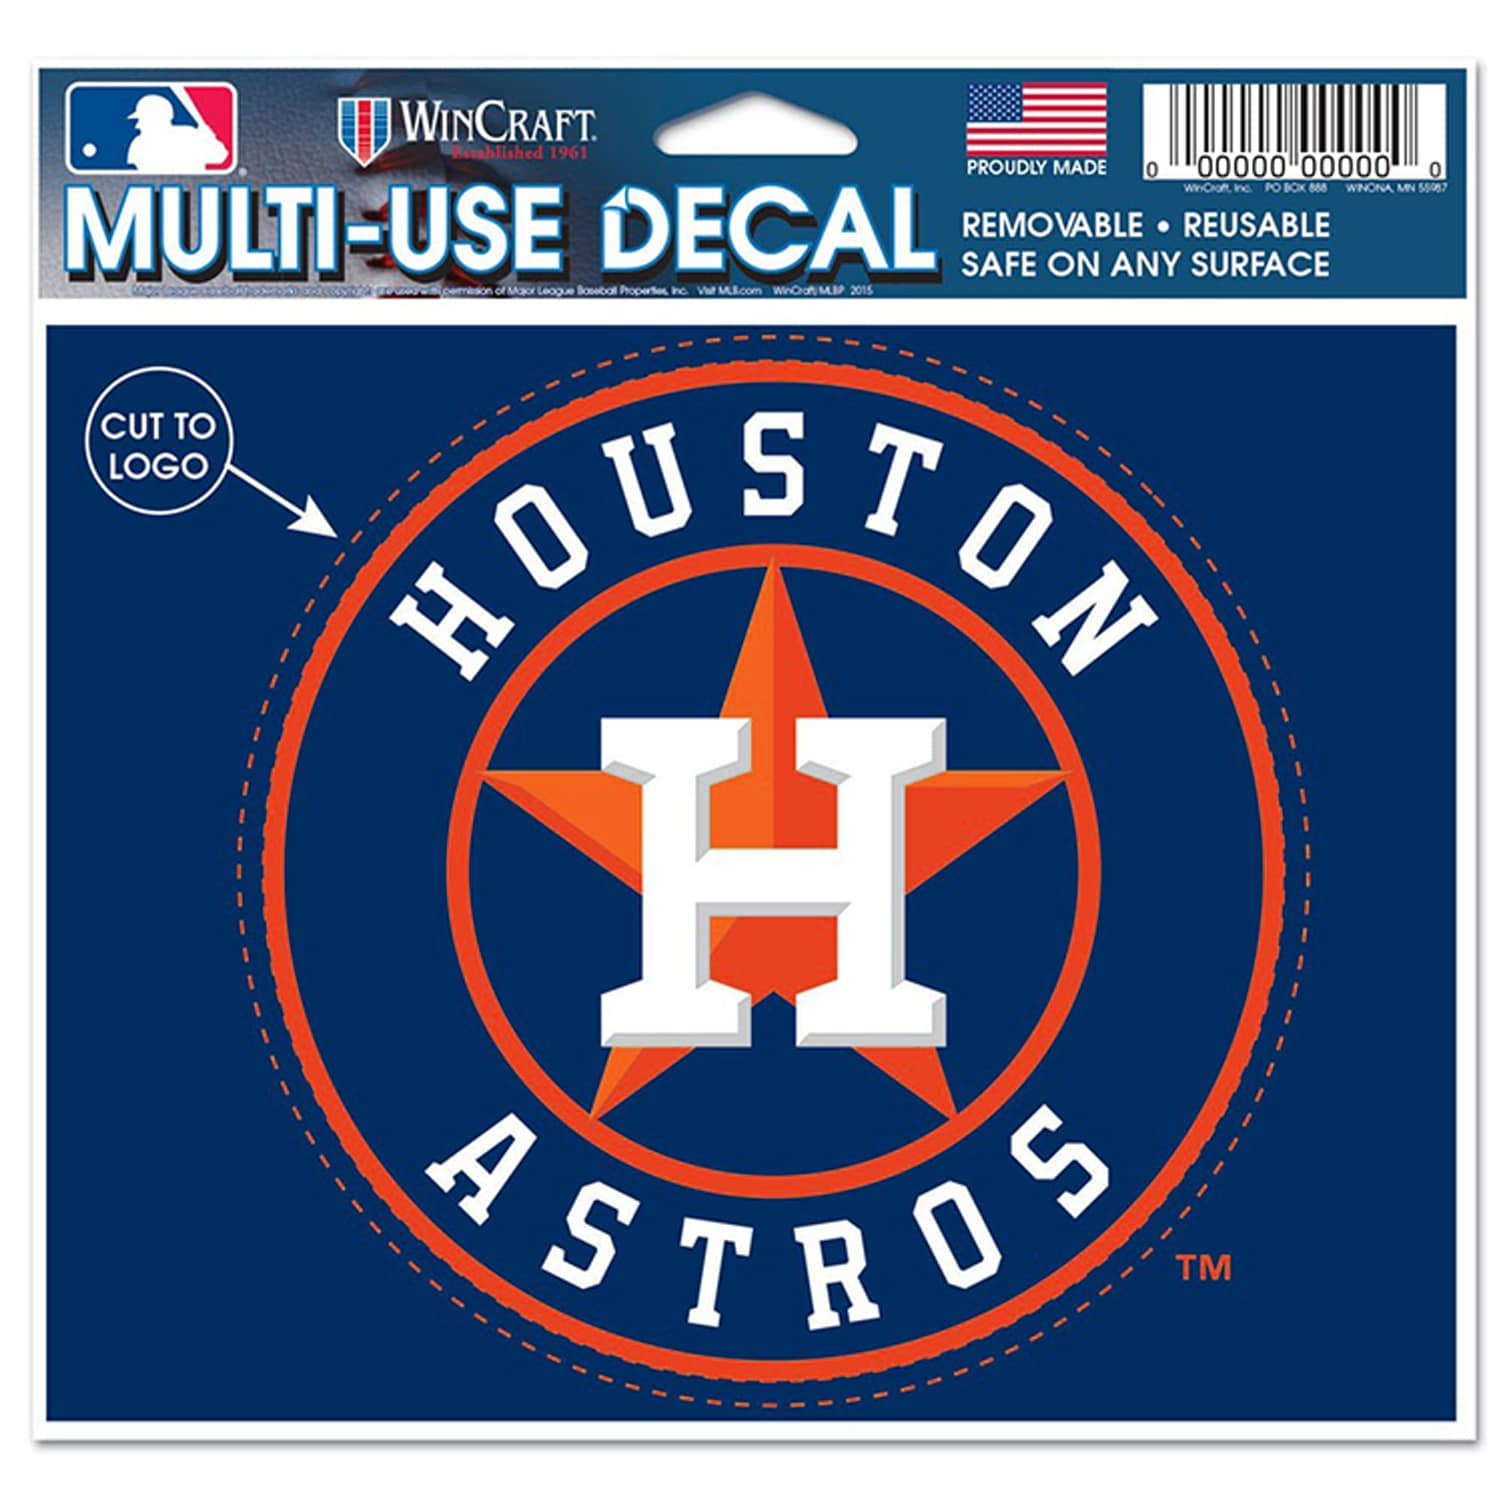 "Houston Astros WinCraft 5"" x 6"" Multi-Use Decal-"